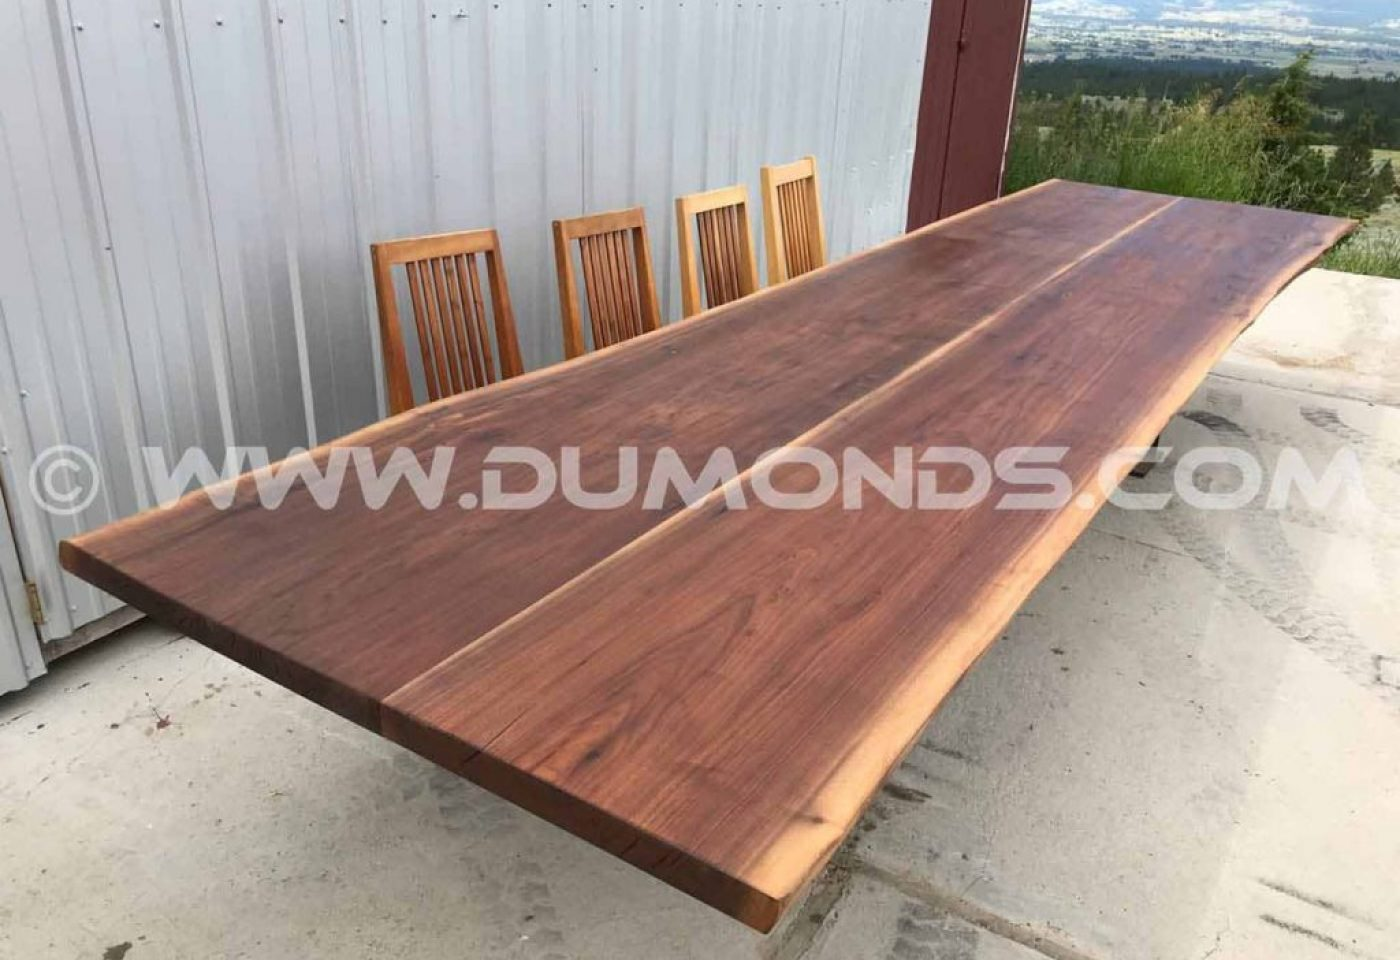 14'9″ LIVE EDGE DOUBLE WALNUT DINING TABLE WITH STEEL I-BEAM LEGS